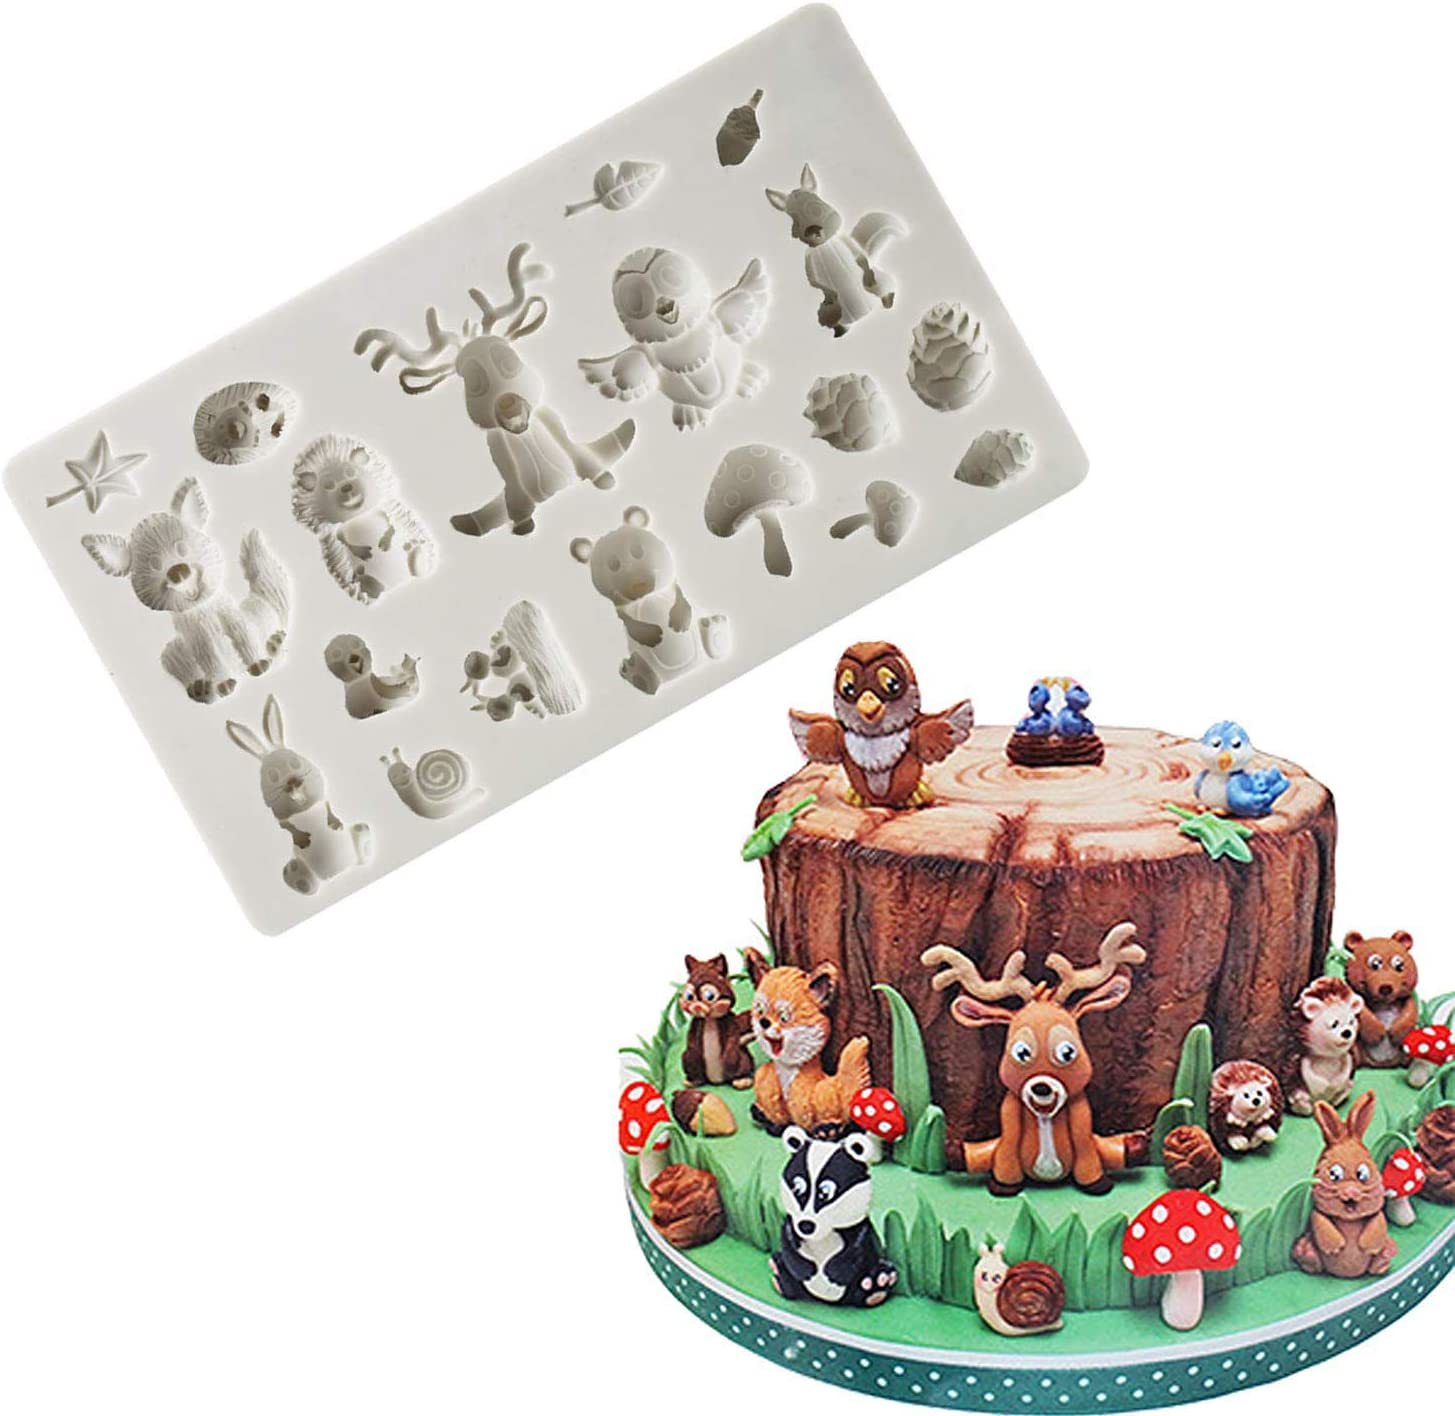 Fewo Forest Animals Fondant Molds Zoo Animal Silicone Mold for Chocolate Candy Gum Paste Polymer Clay Resin Sugar Craft Cake Cupcake Decorating Supplies (Squirrel Rabbit Sika Deer Hedgehog Mushroom)